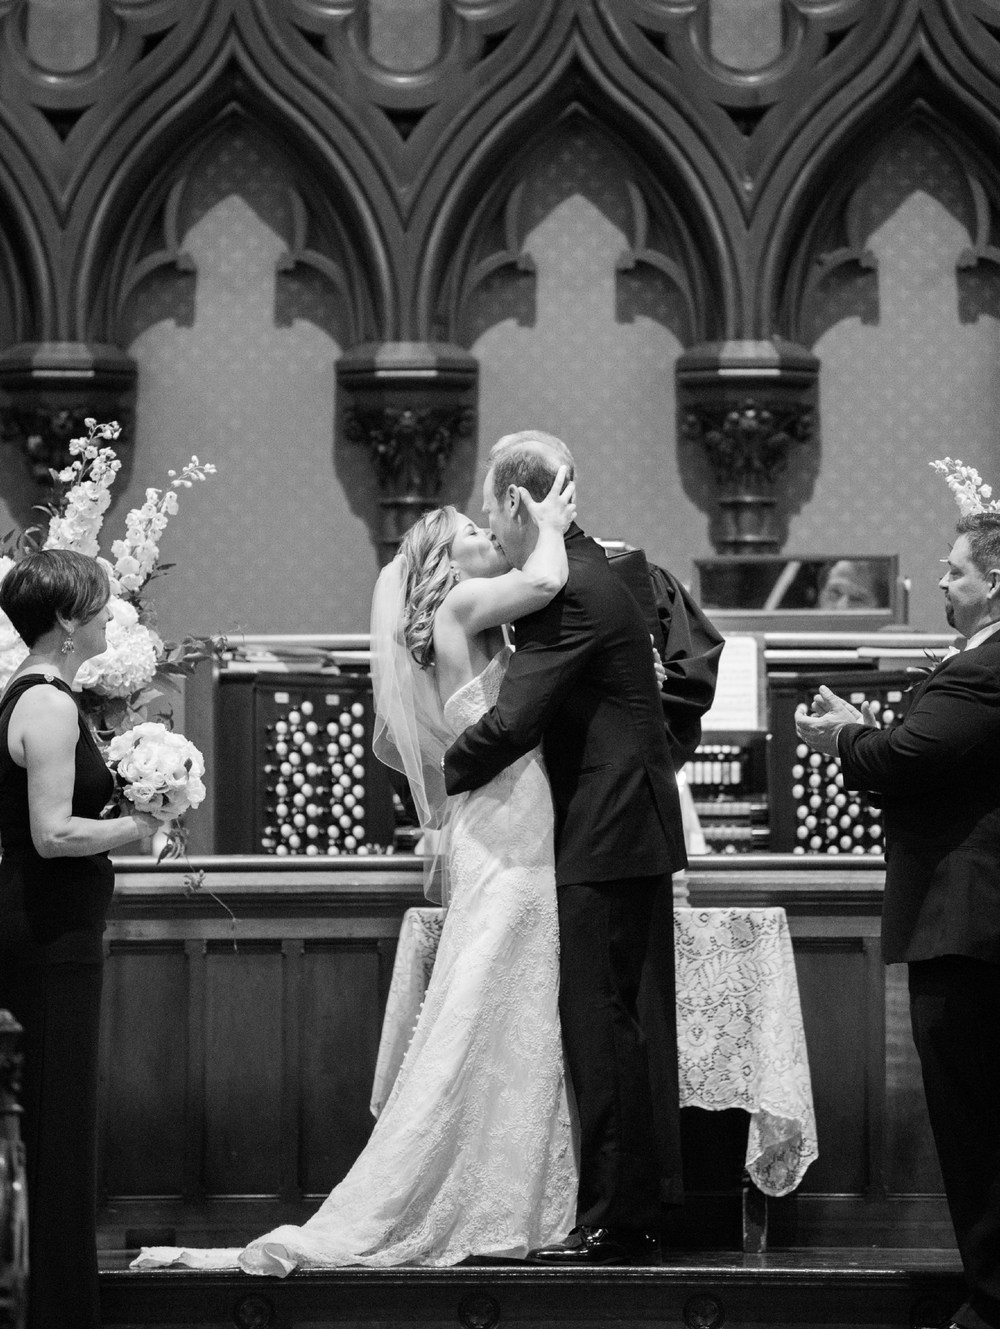 fairmont_copley_plaza_wedding_deborah_zoe_0027.JPG